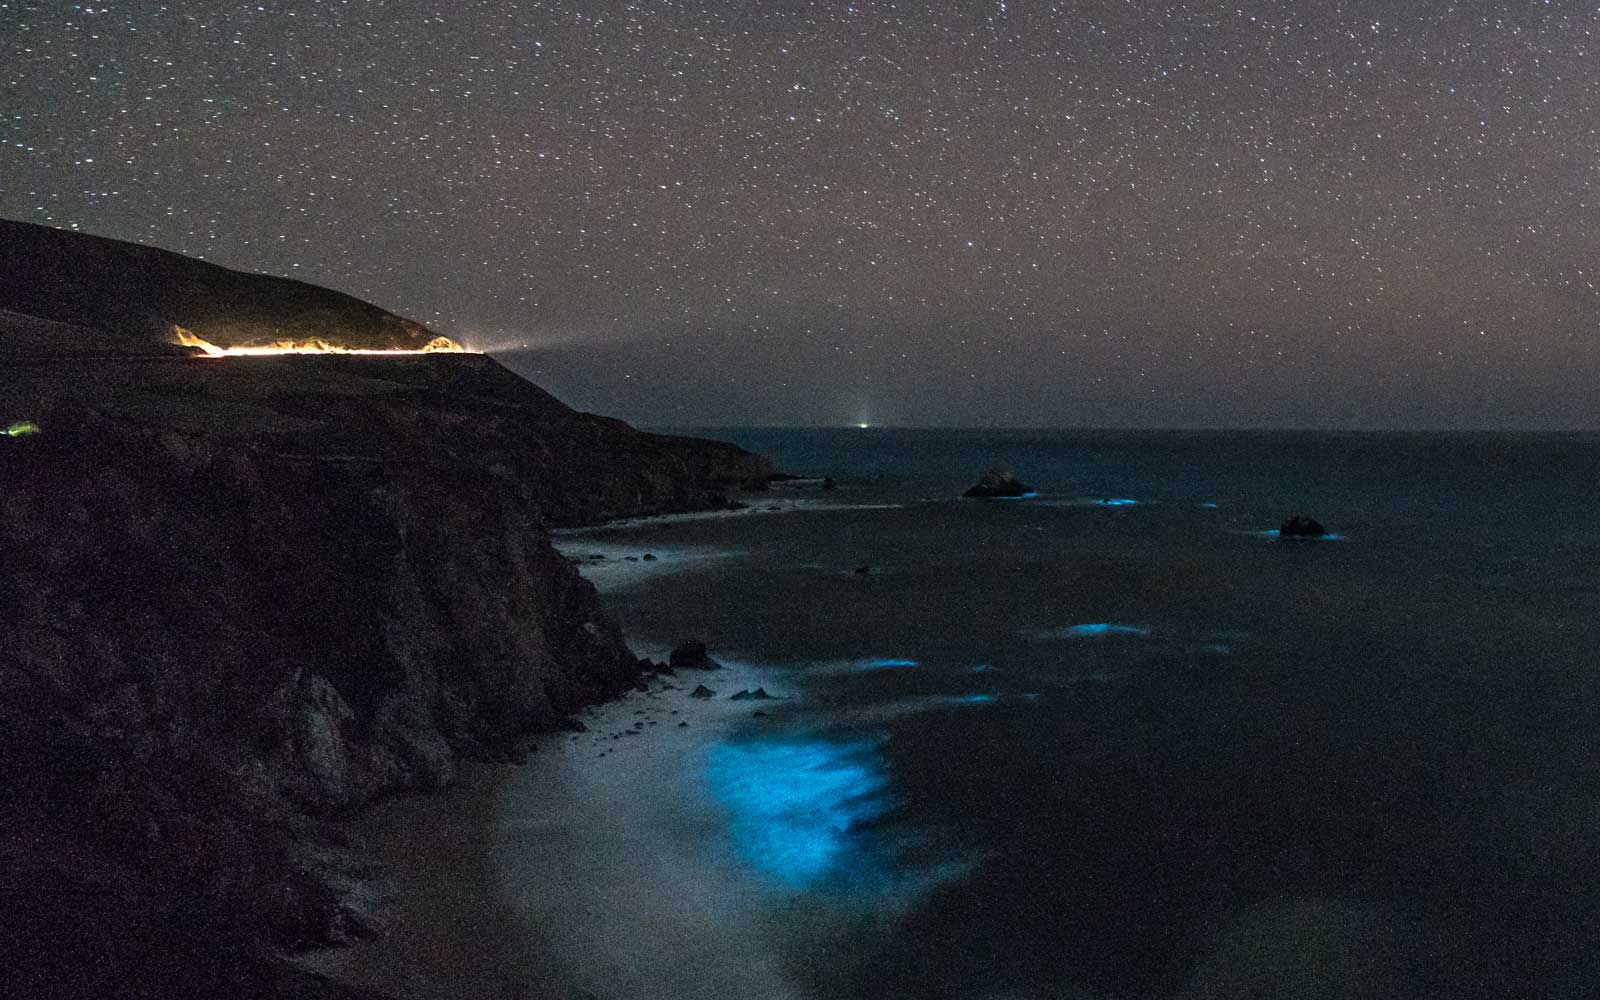 Bioluminescence in the bay at Big Sur, California